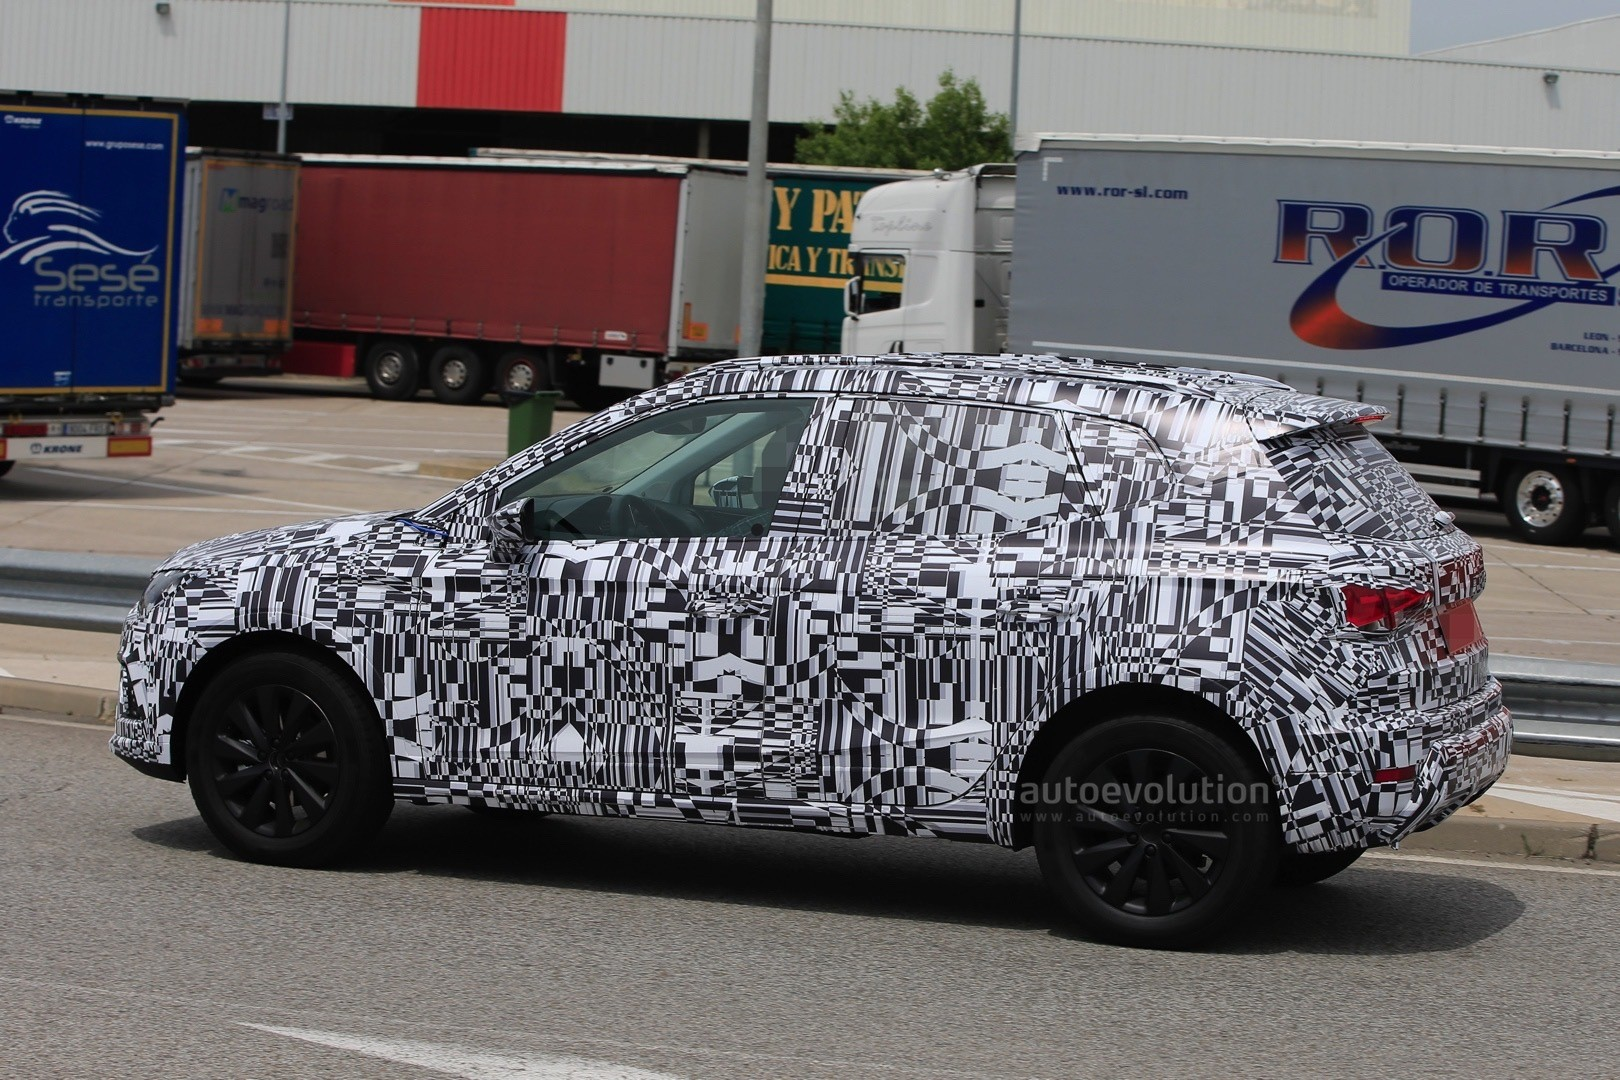 2018 seat arona spied testing on spanish roads autoevolution. Black Bedroom Furniture Sets. Home Design Ideas